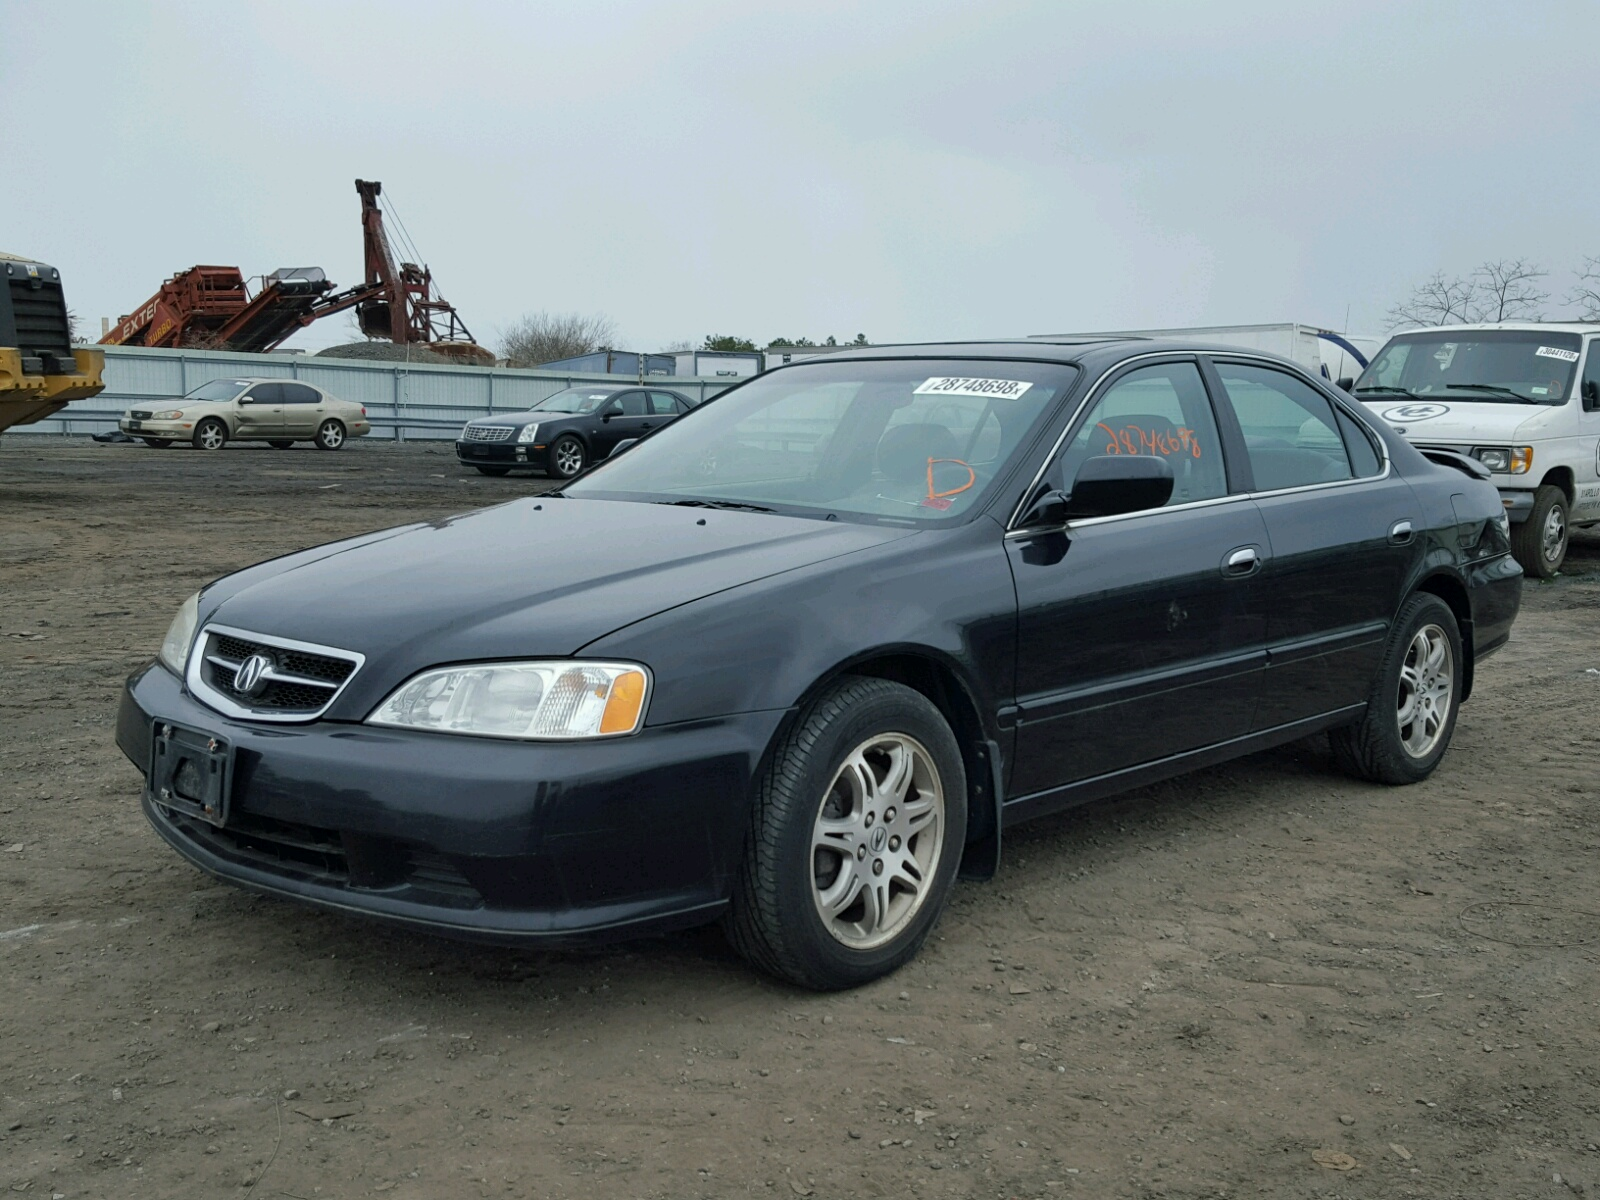 tl cars sedan for pic overview acura dr cargurus sale